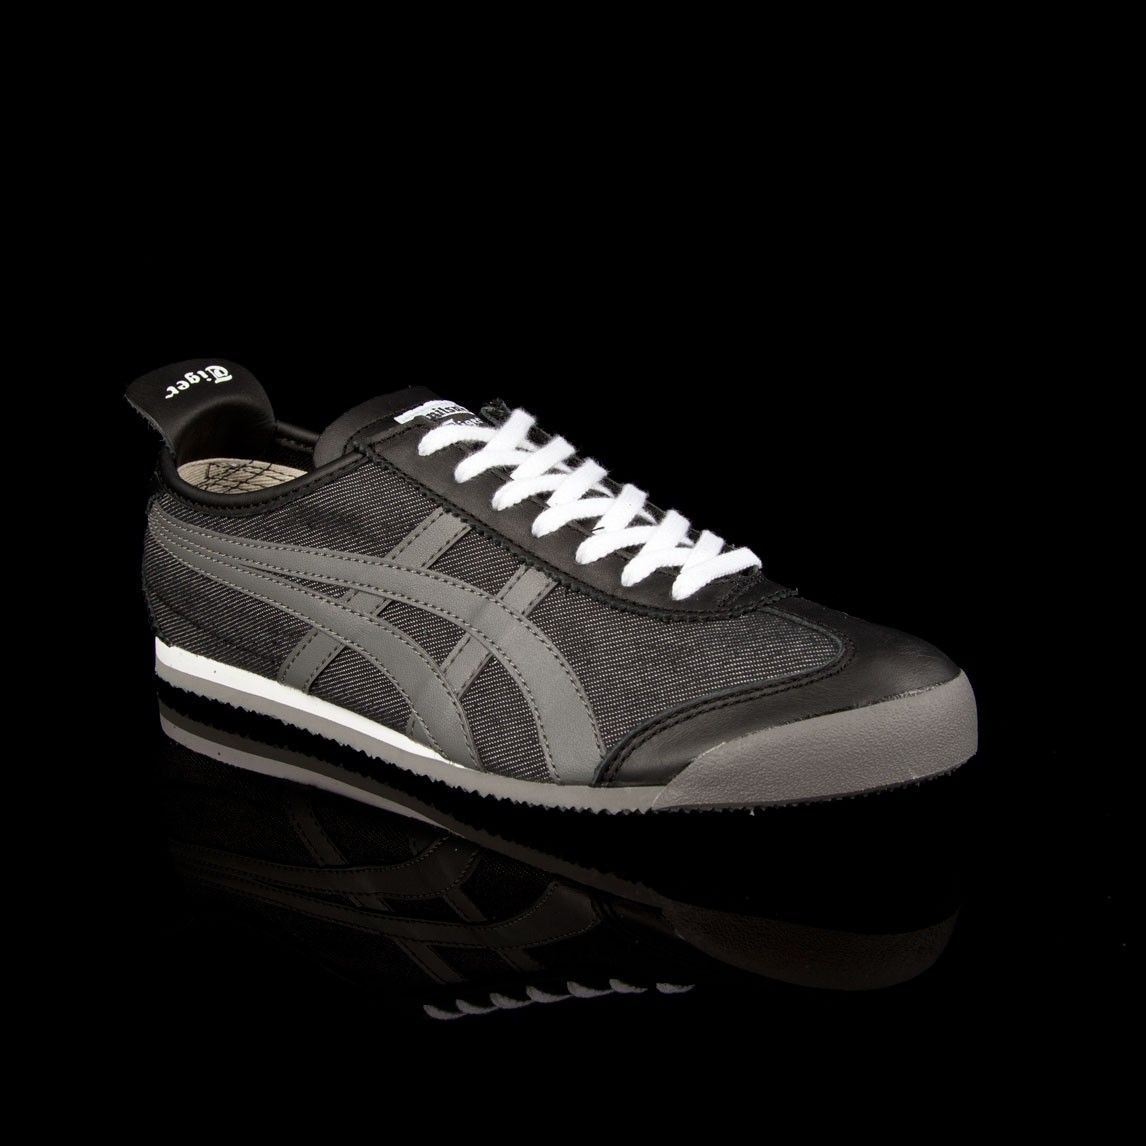 cheap for discount f39f3 b0129 Onitsuka Tiger MEXICO 66 | Fashion for Him | Retro shoes ...